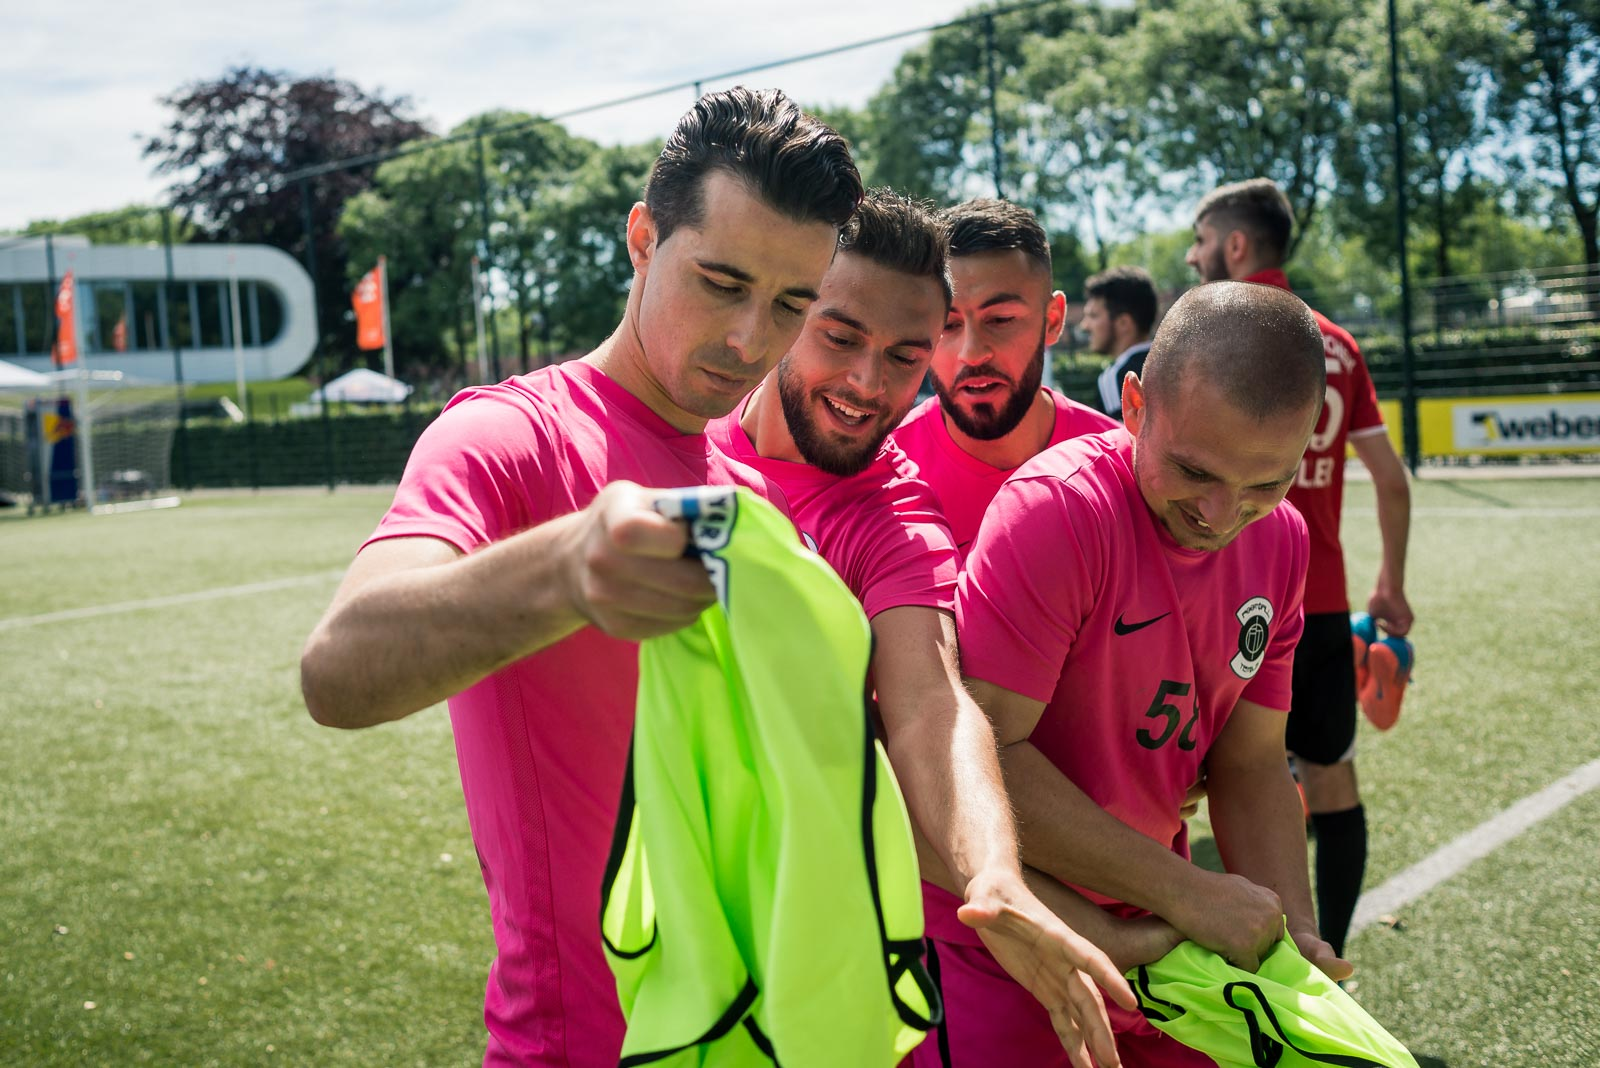 Players getting a bib during Red Bull Neymar Jr's Five football tournament